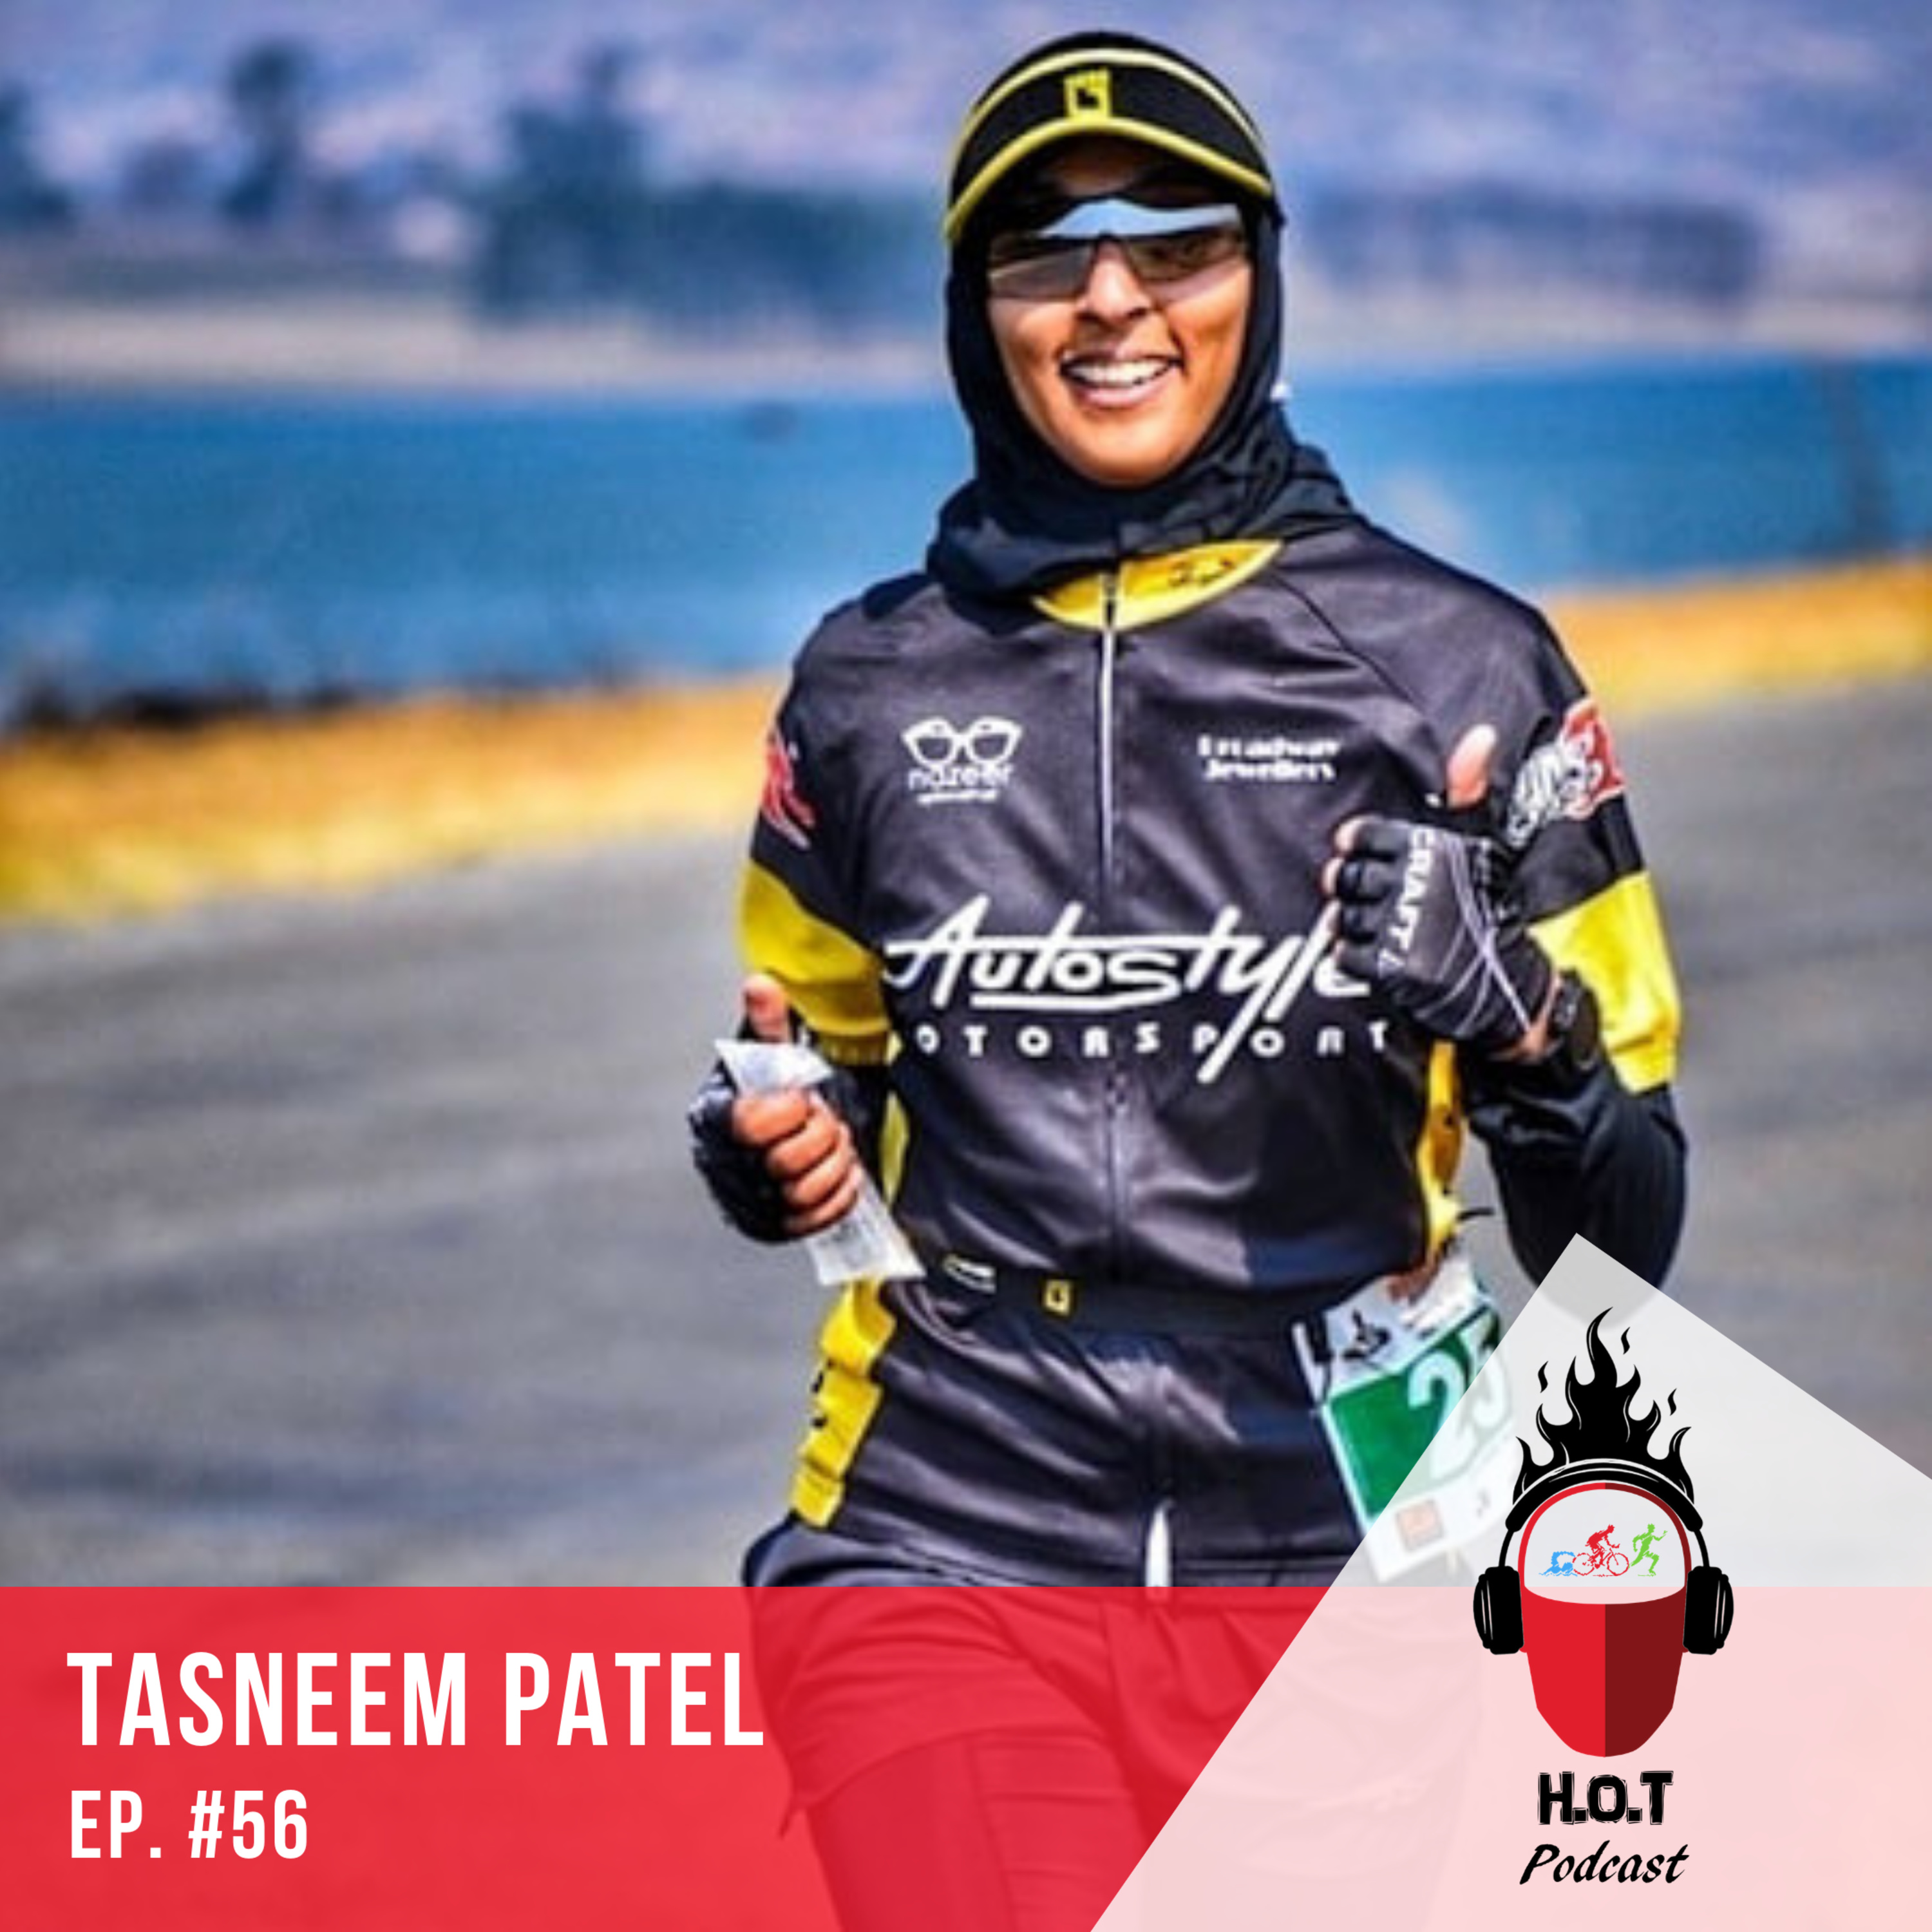 Ep. #56: Tasneem Patel | A Fully Covered Athlete from South Africa